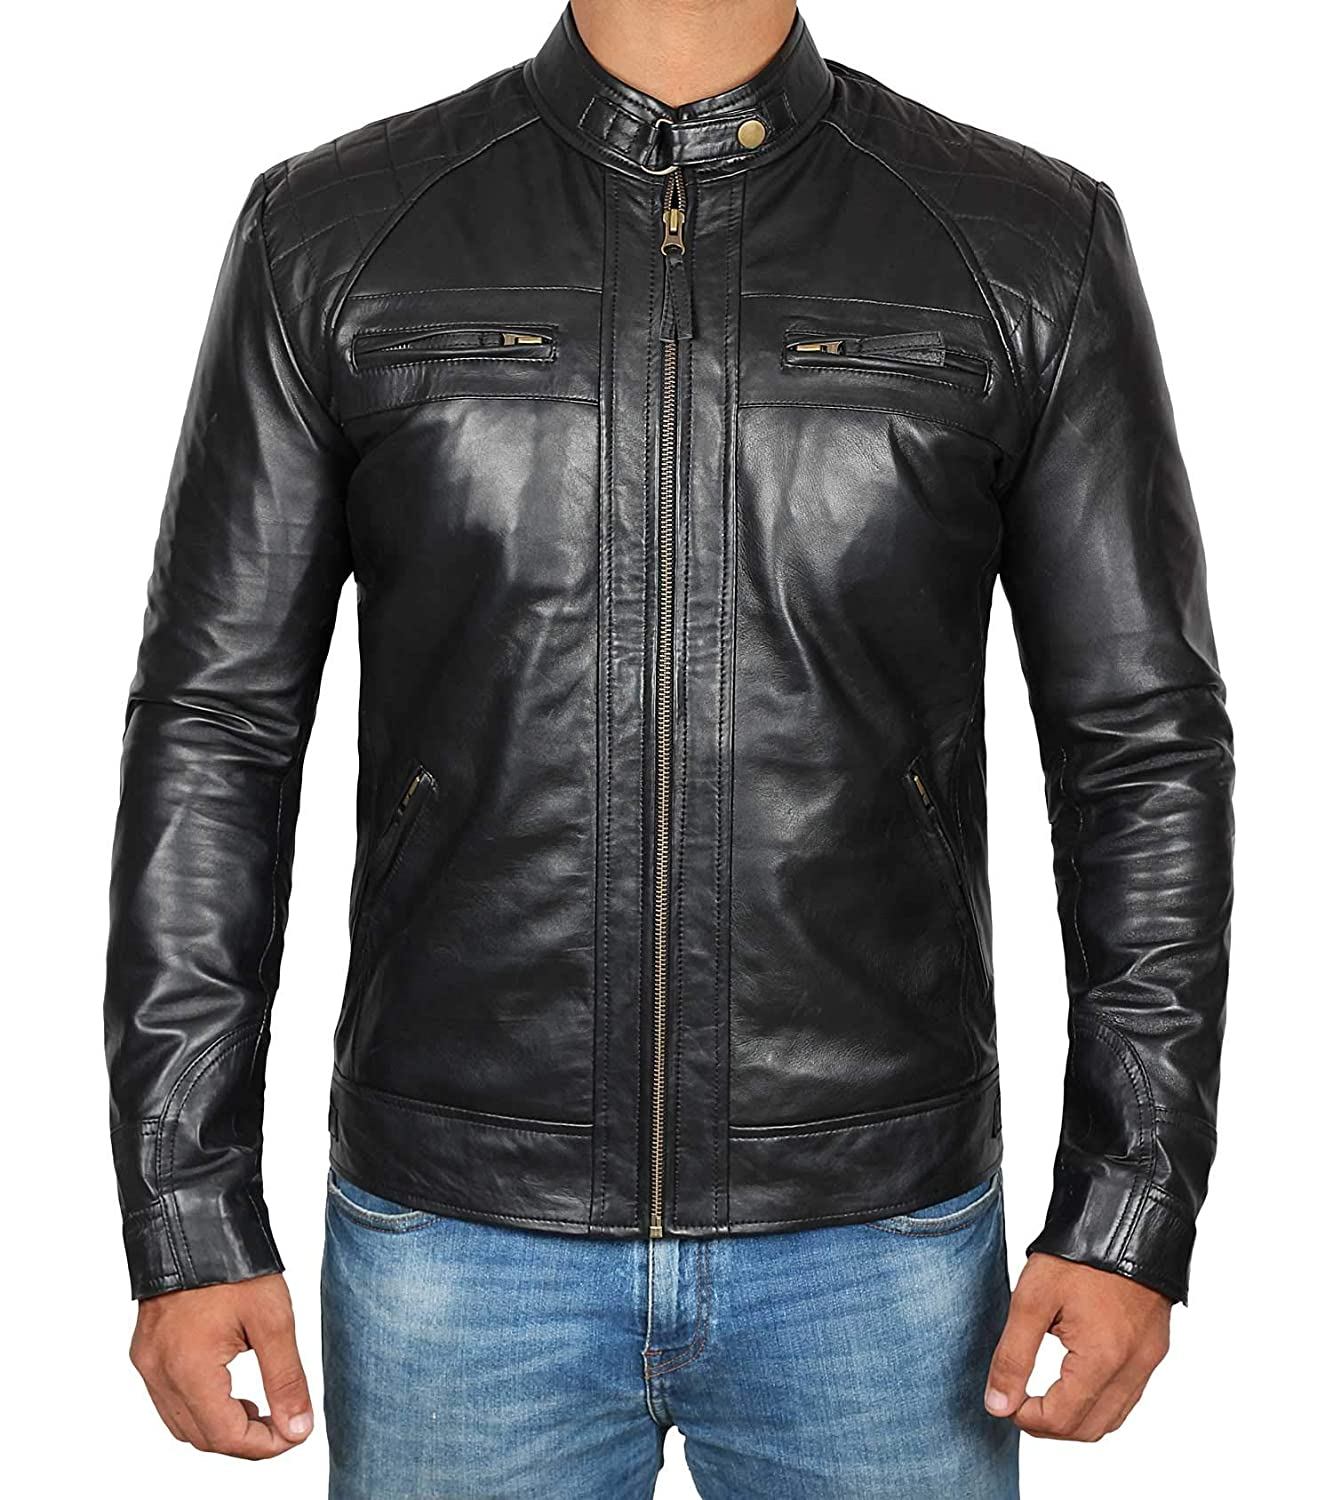 53c4d2db55d Brown Leather Jacket Men - Biker Style Distressed Lambskin Black Motorcycle Mens  Leather Jackets at Amazon Men s Clothing store